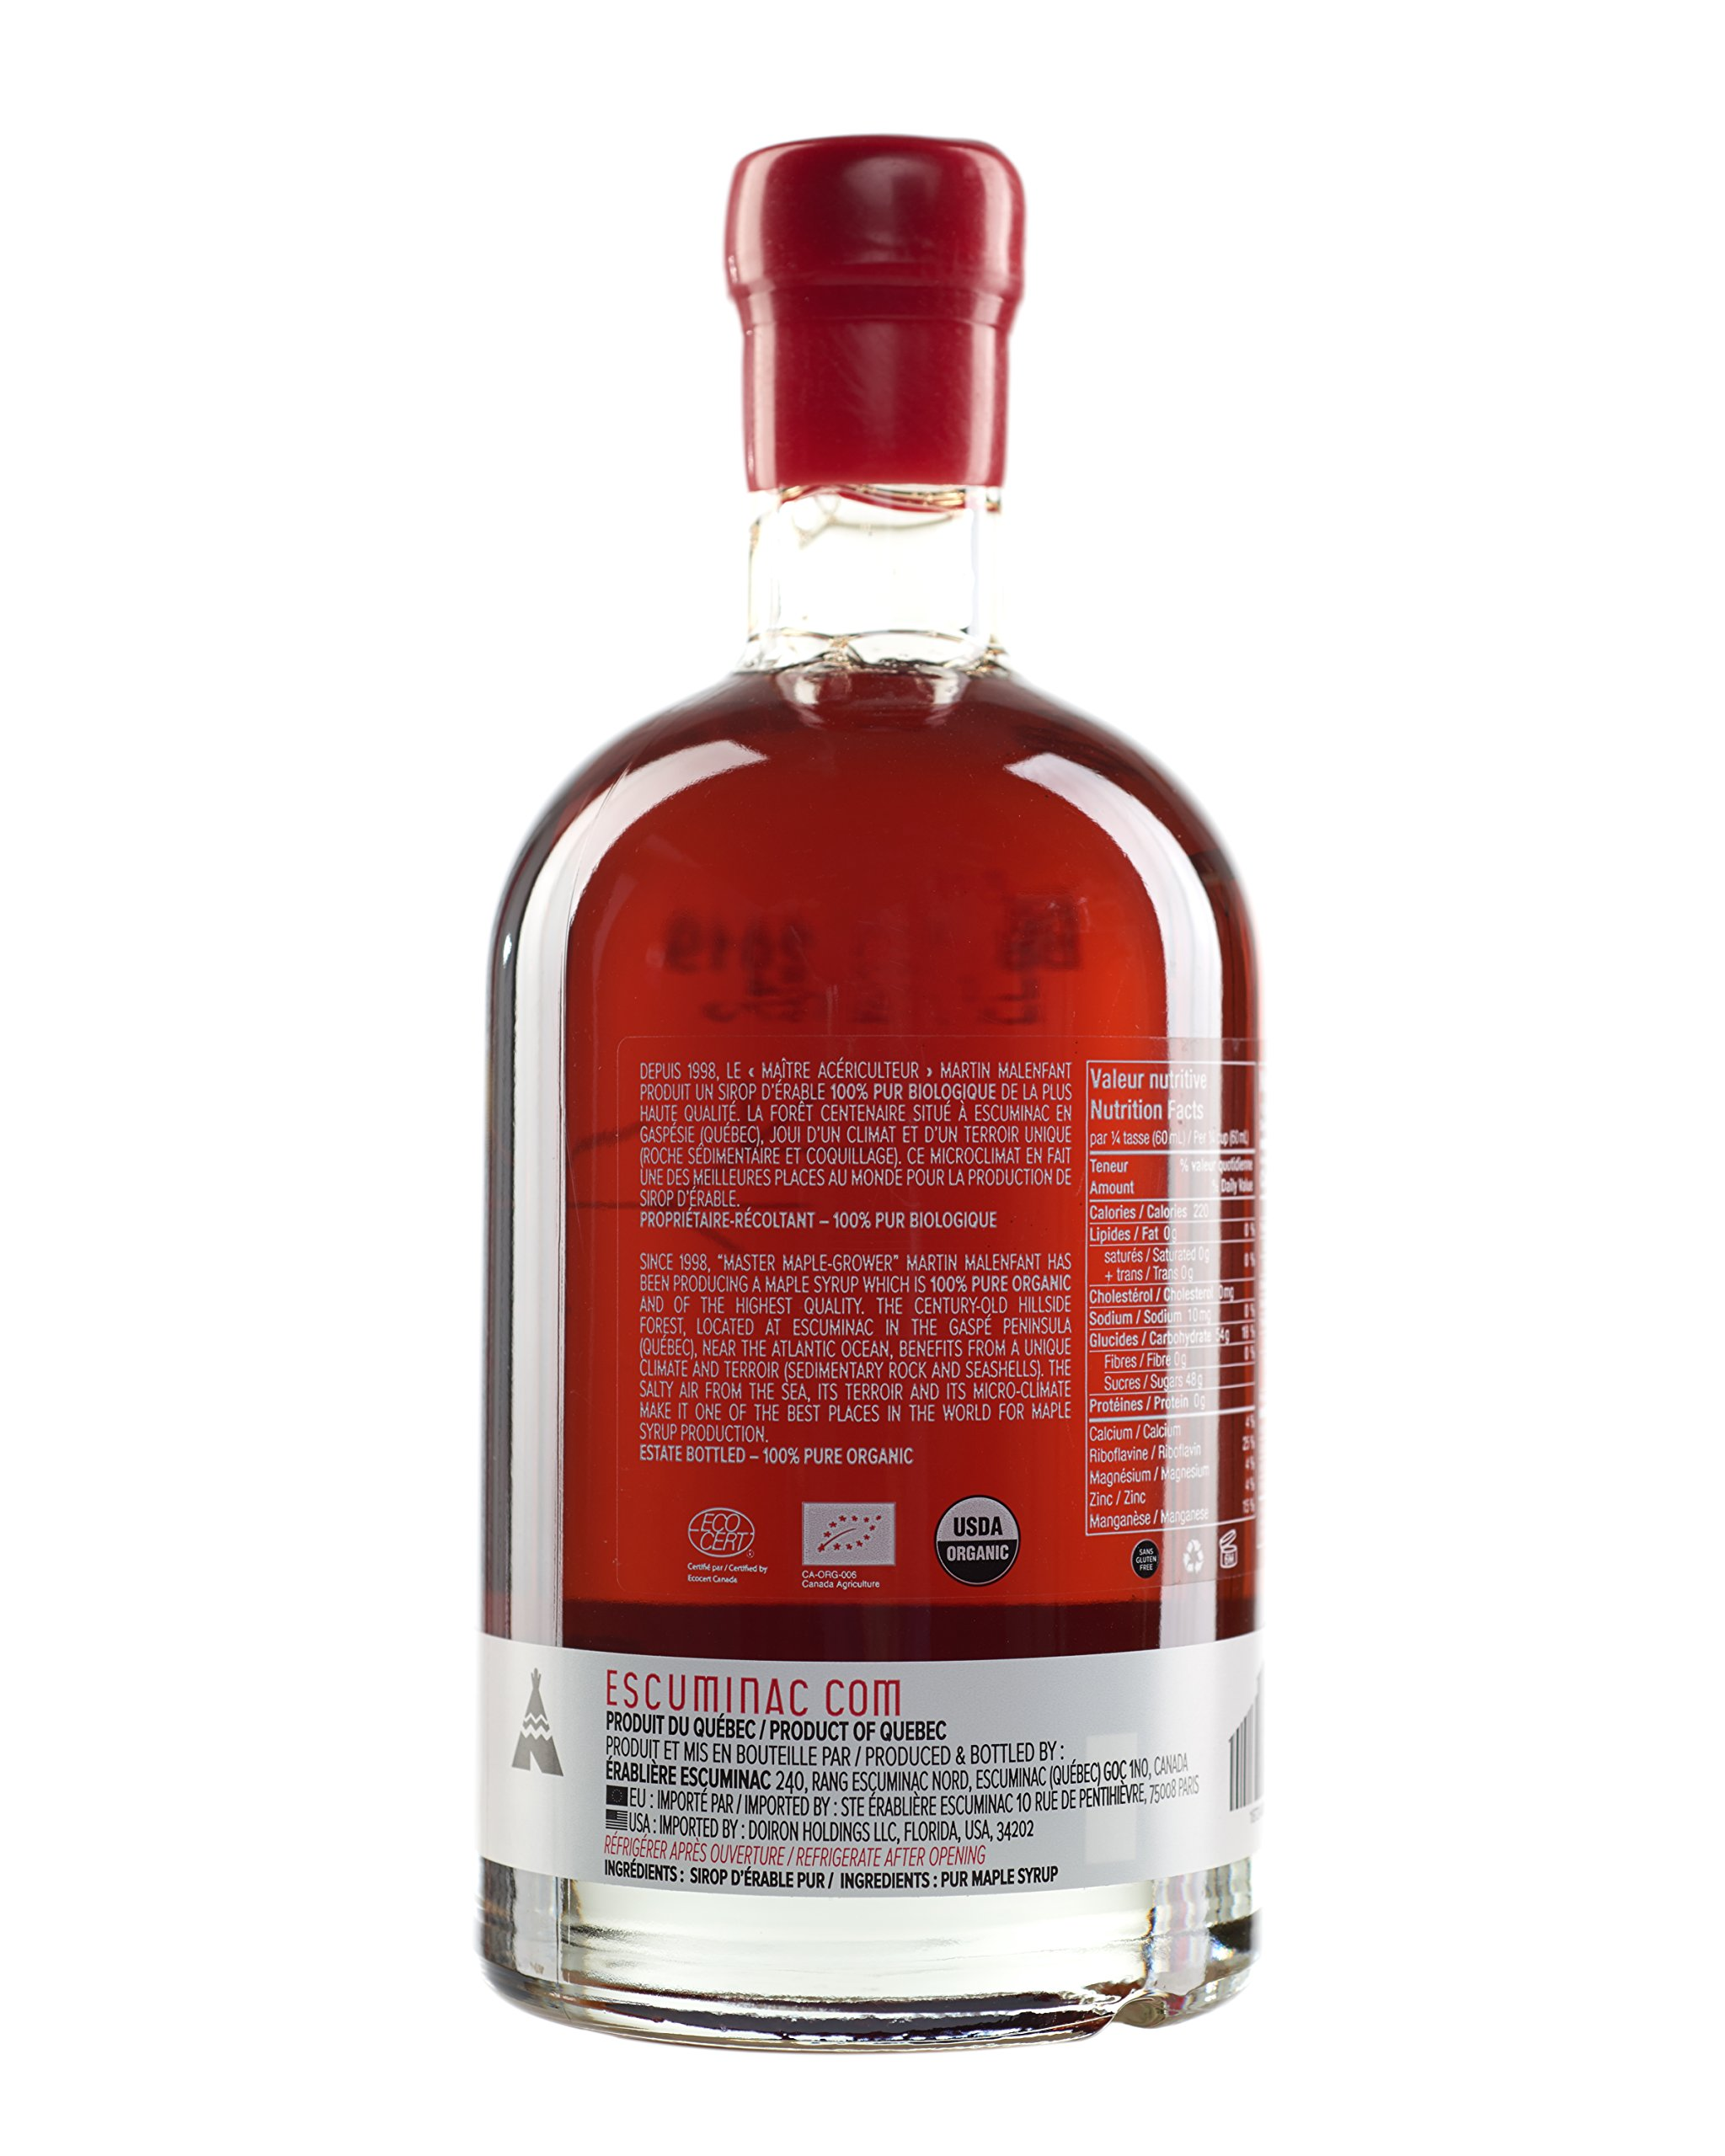 Award Winning Escuminac Canadian Maple Syrup Gift Bundle Grade A Including Our Extra Rare, Great Harvest and Late Harvest - Pure Organic Unblended Single Forest - 3 X 16.9 fl oz (500 ml) - Easter Gift by Escuminac (Image #6)